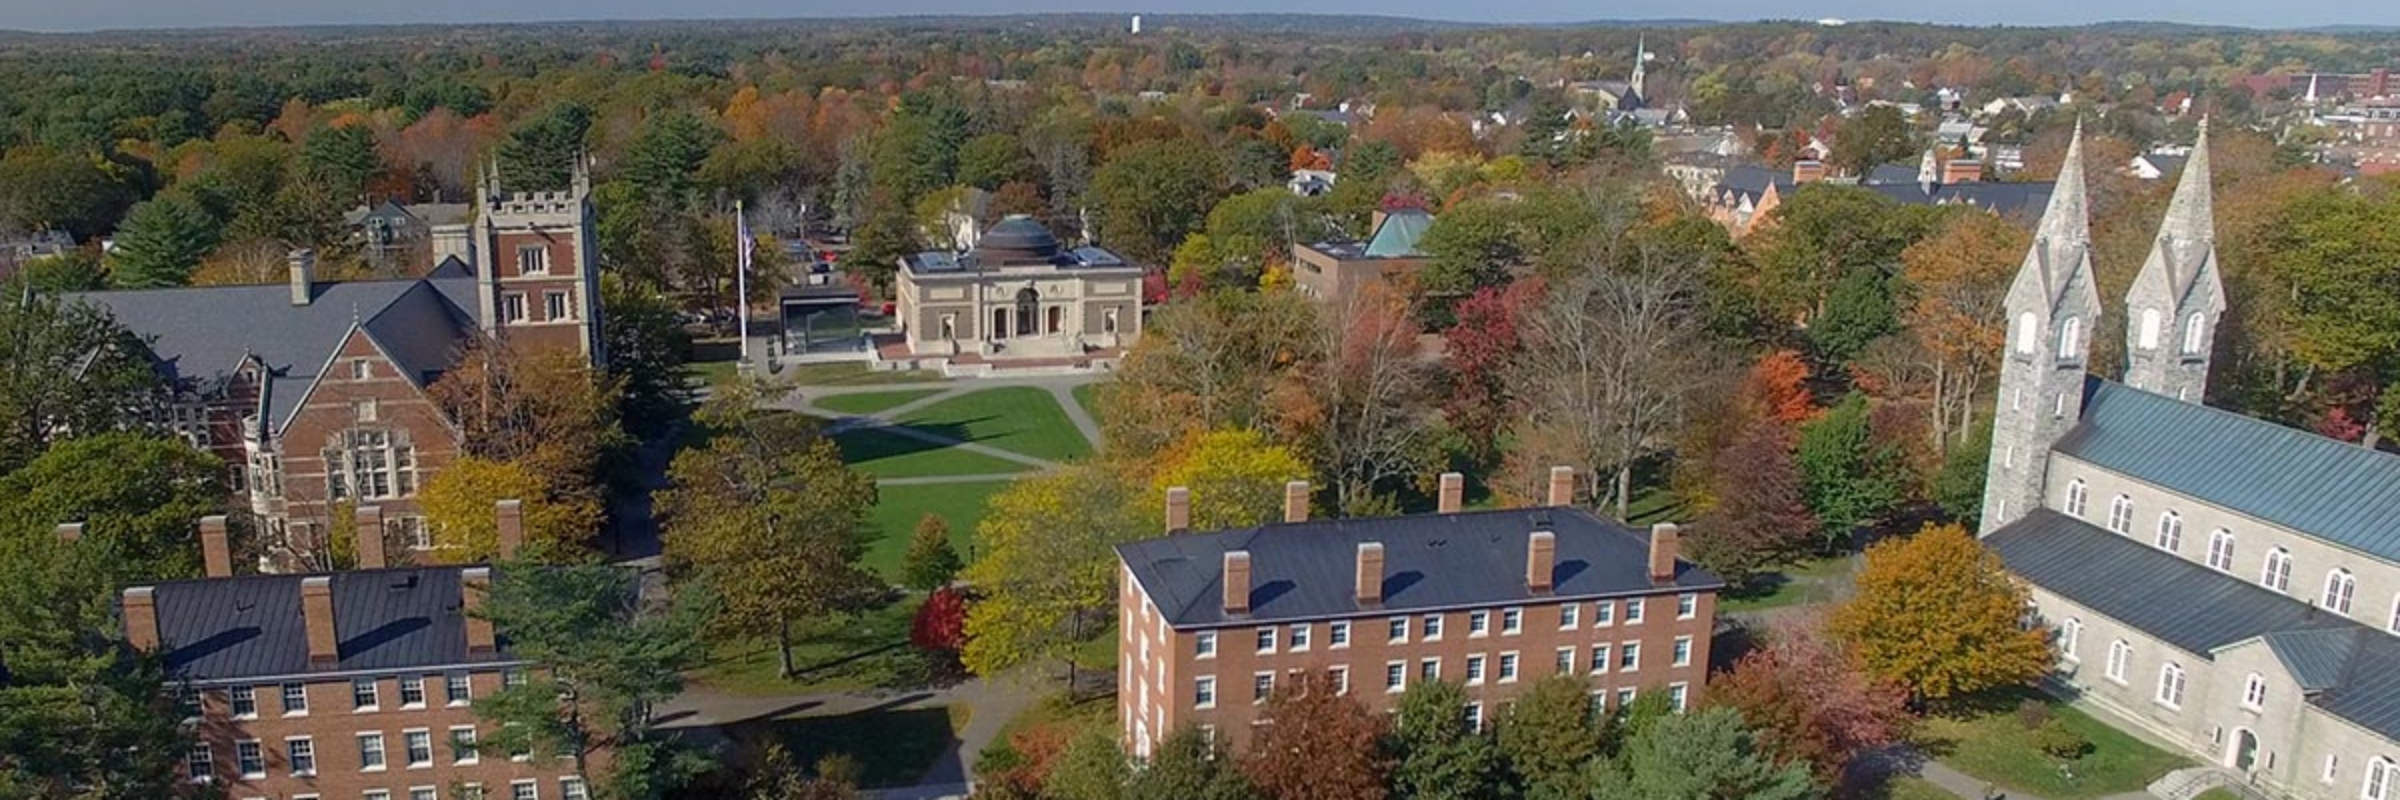 Historic buildings on the Bowdoin College campus in Brunswick, Maine